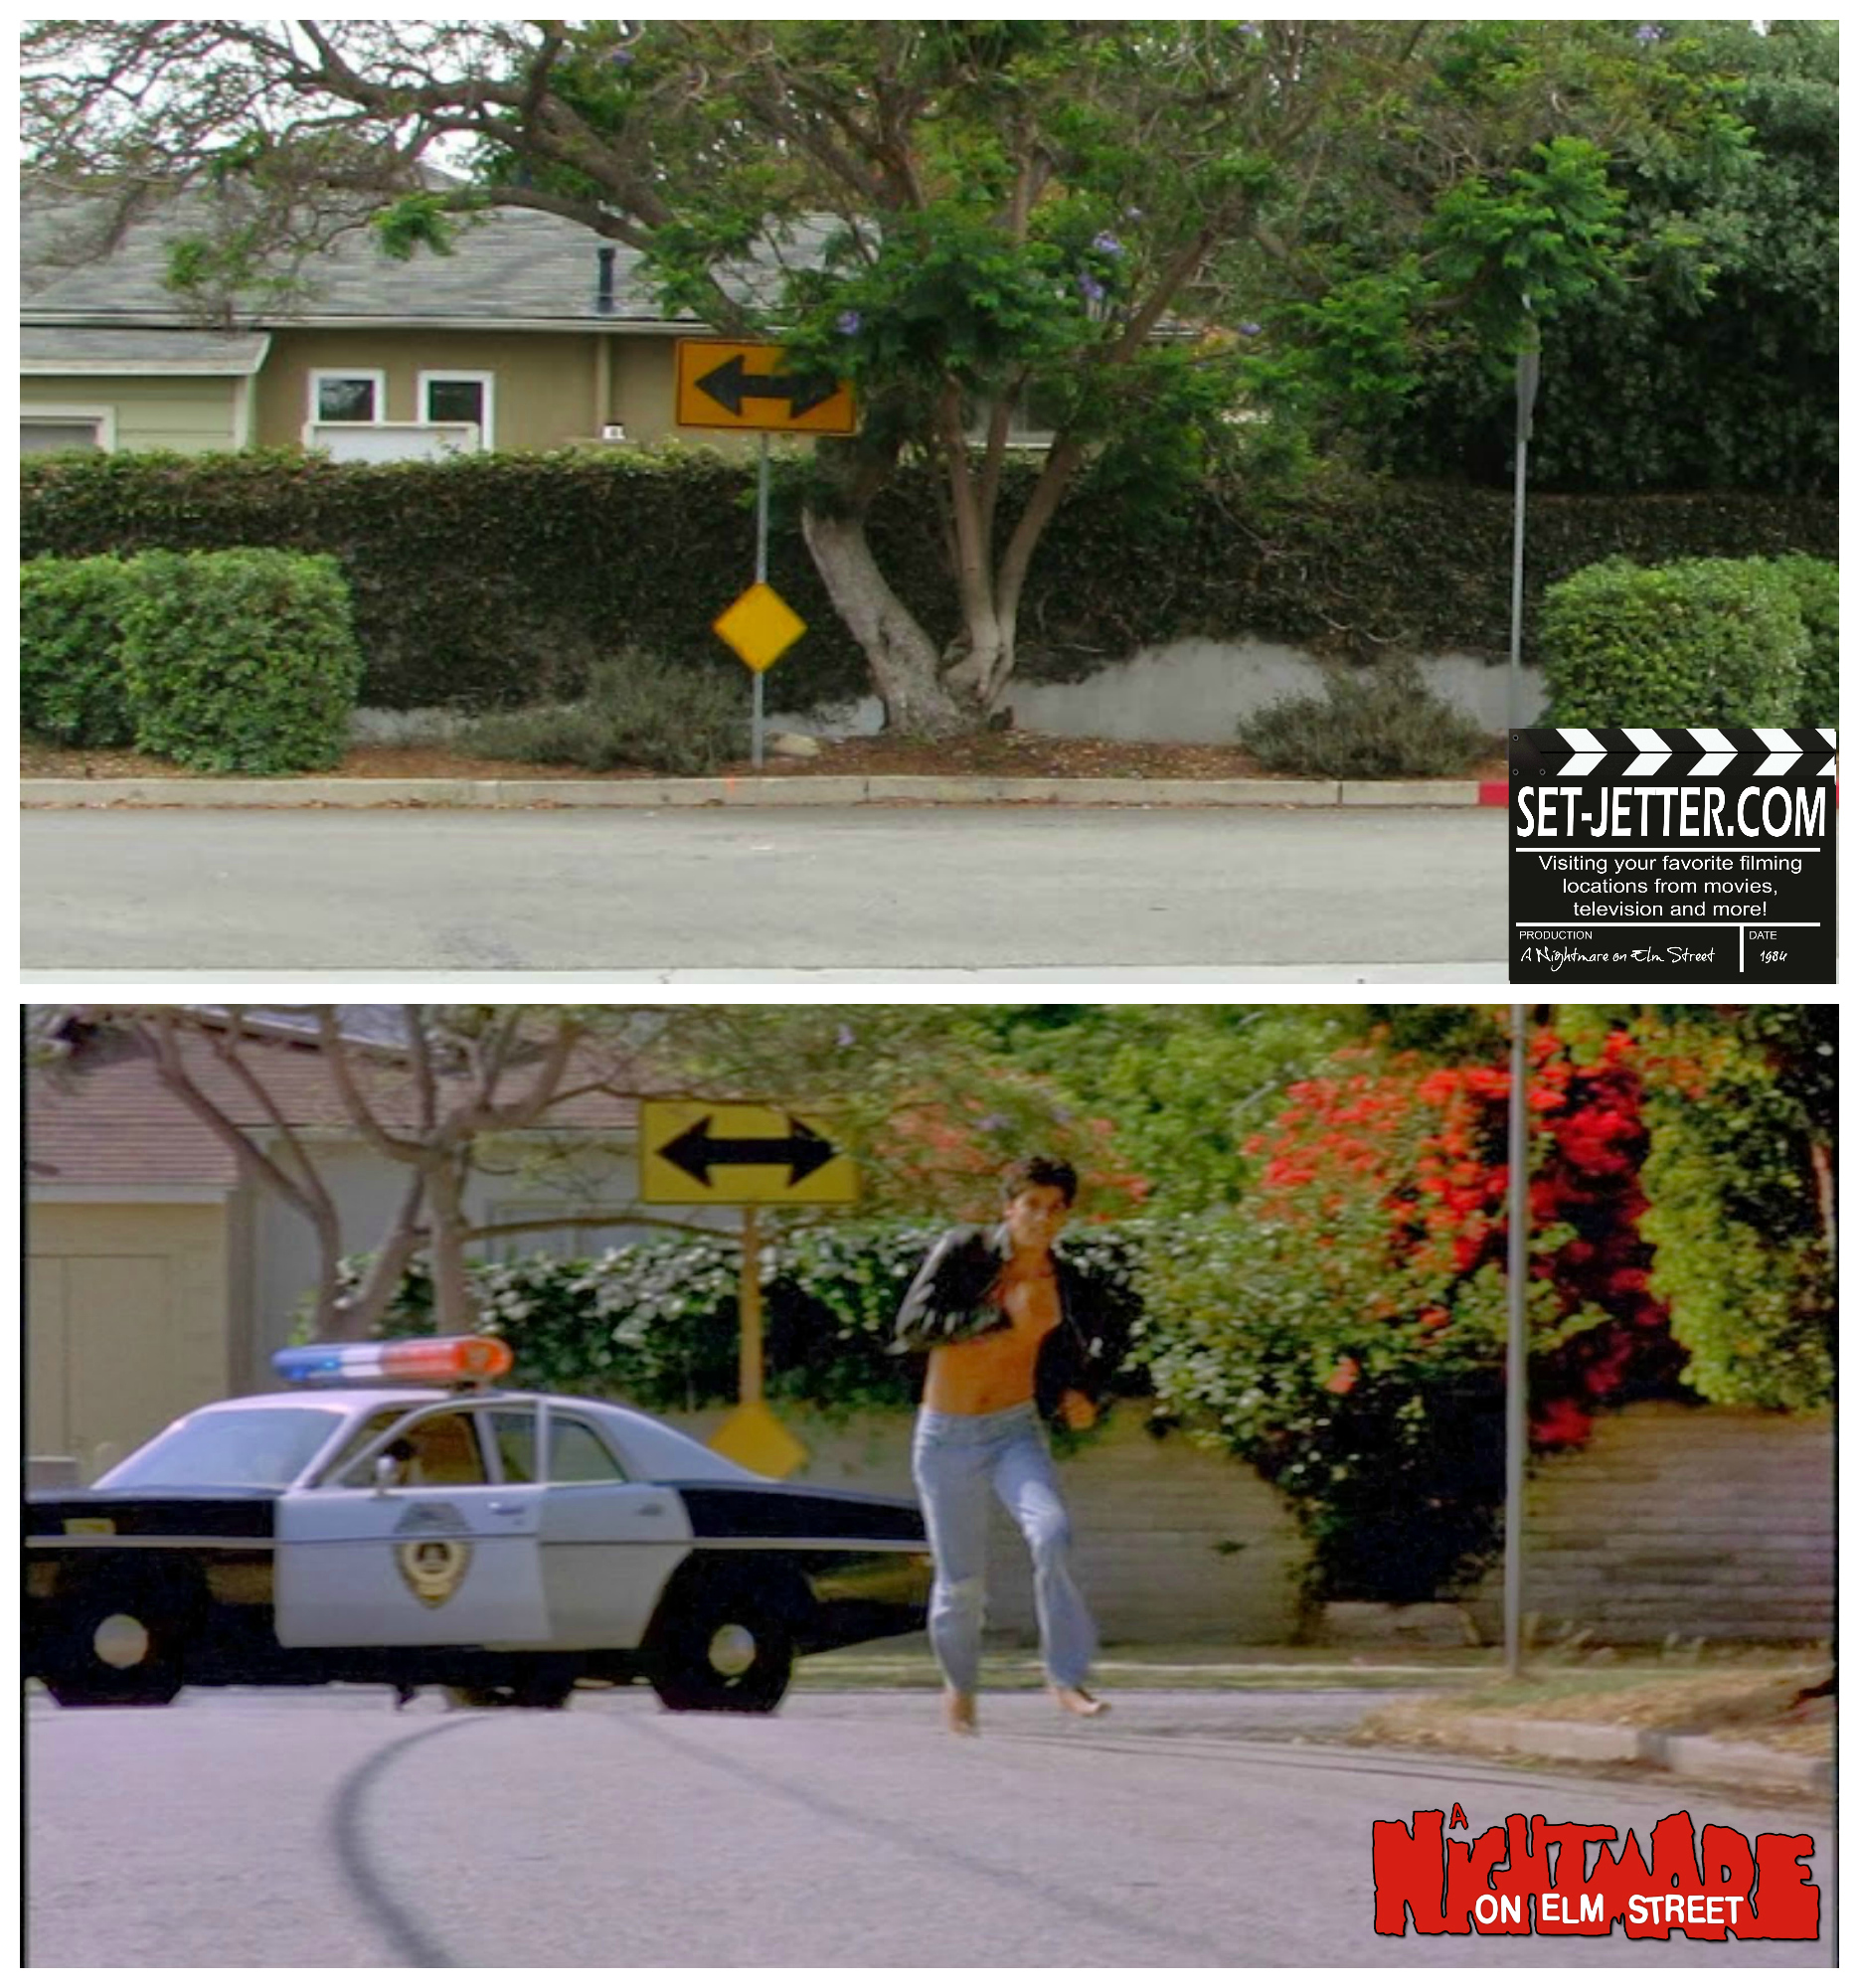 Nightmare on Elm Street comparison 19.jpg